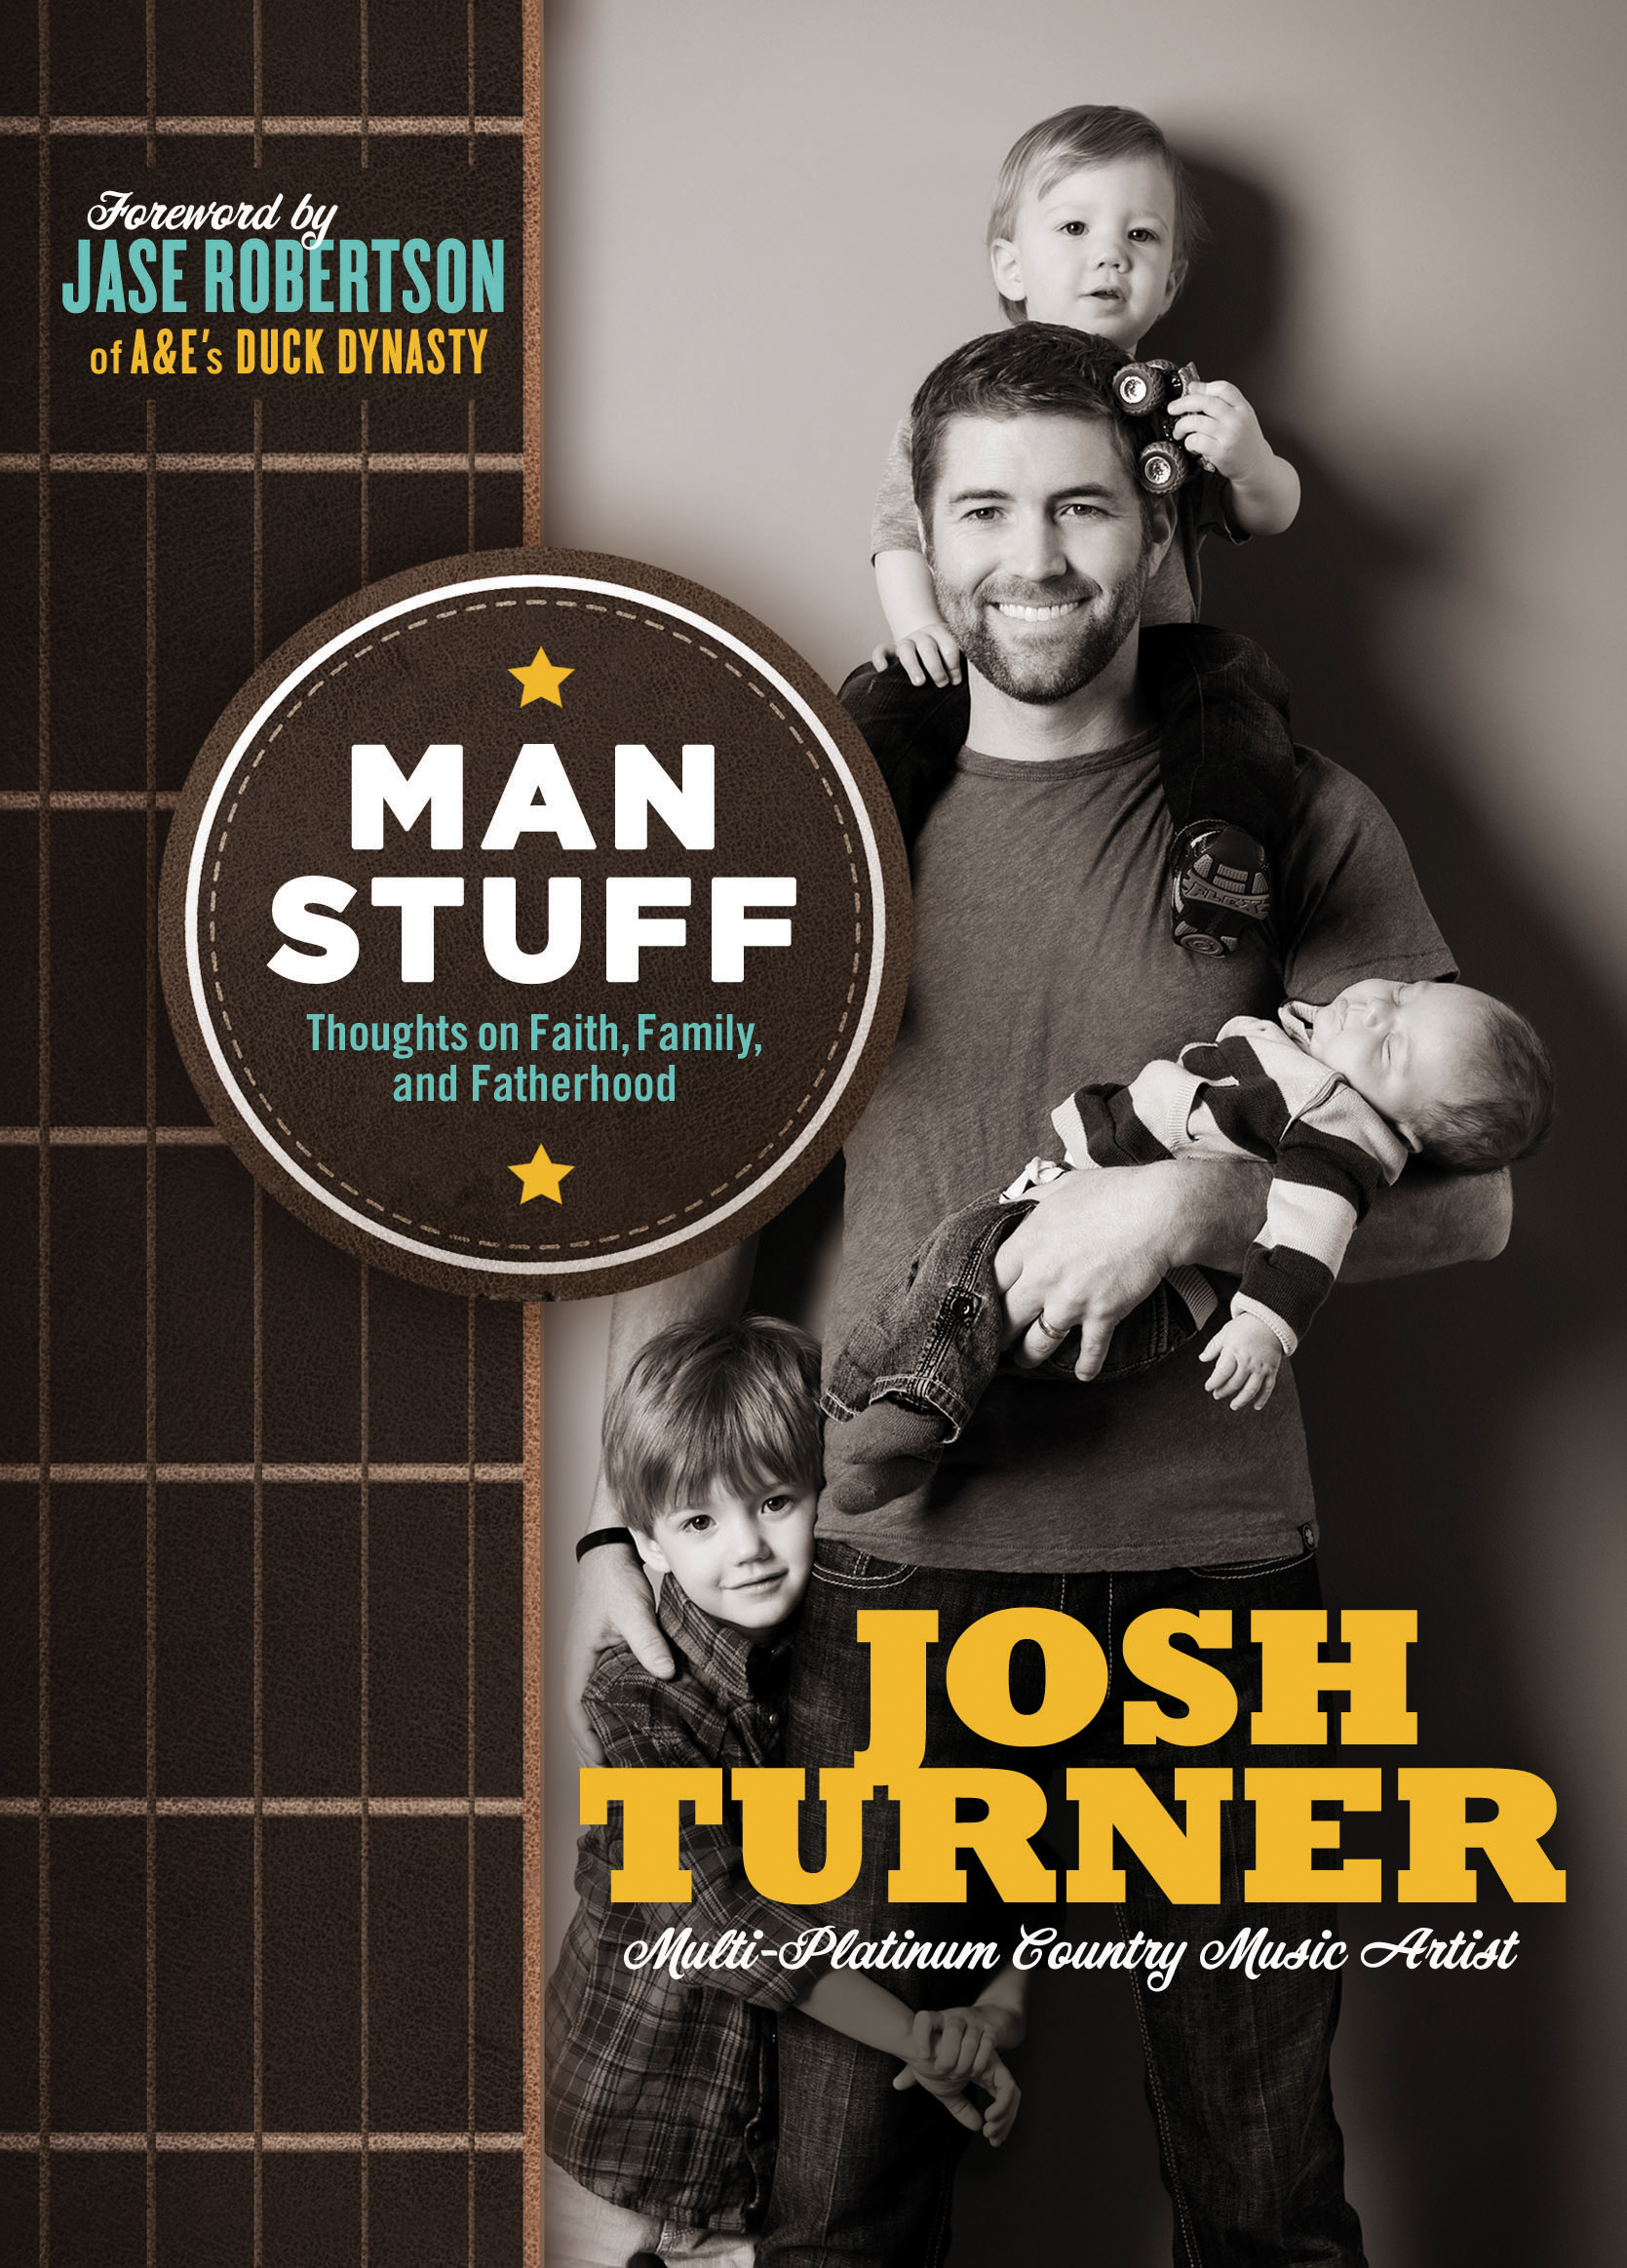 Man stuff by josh turner